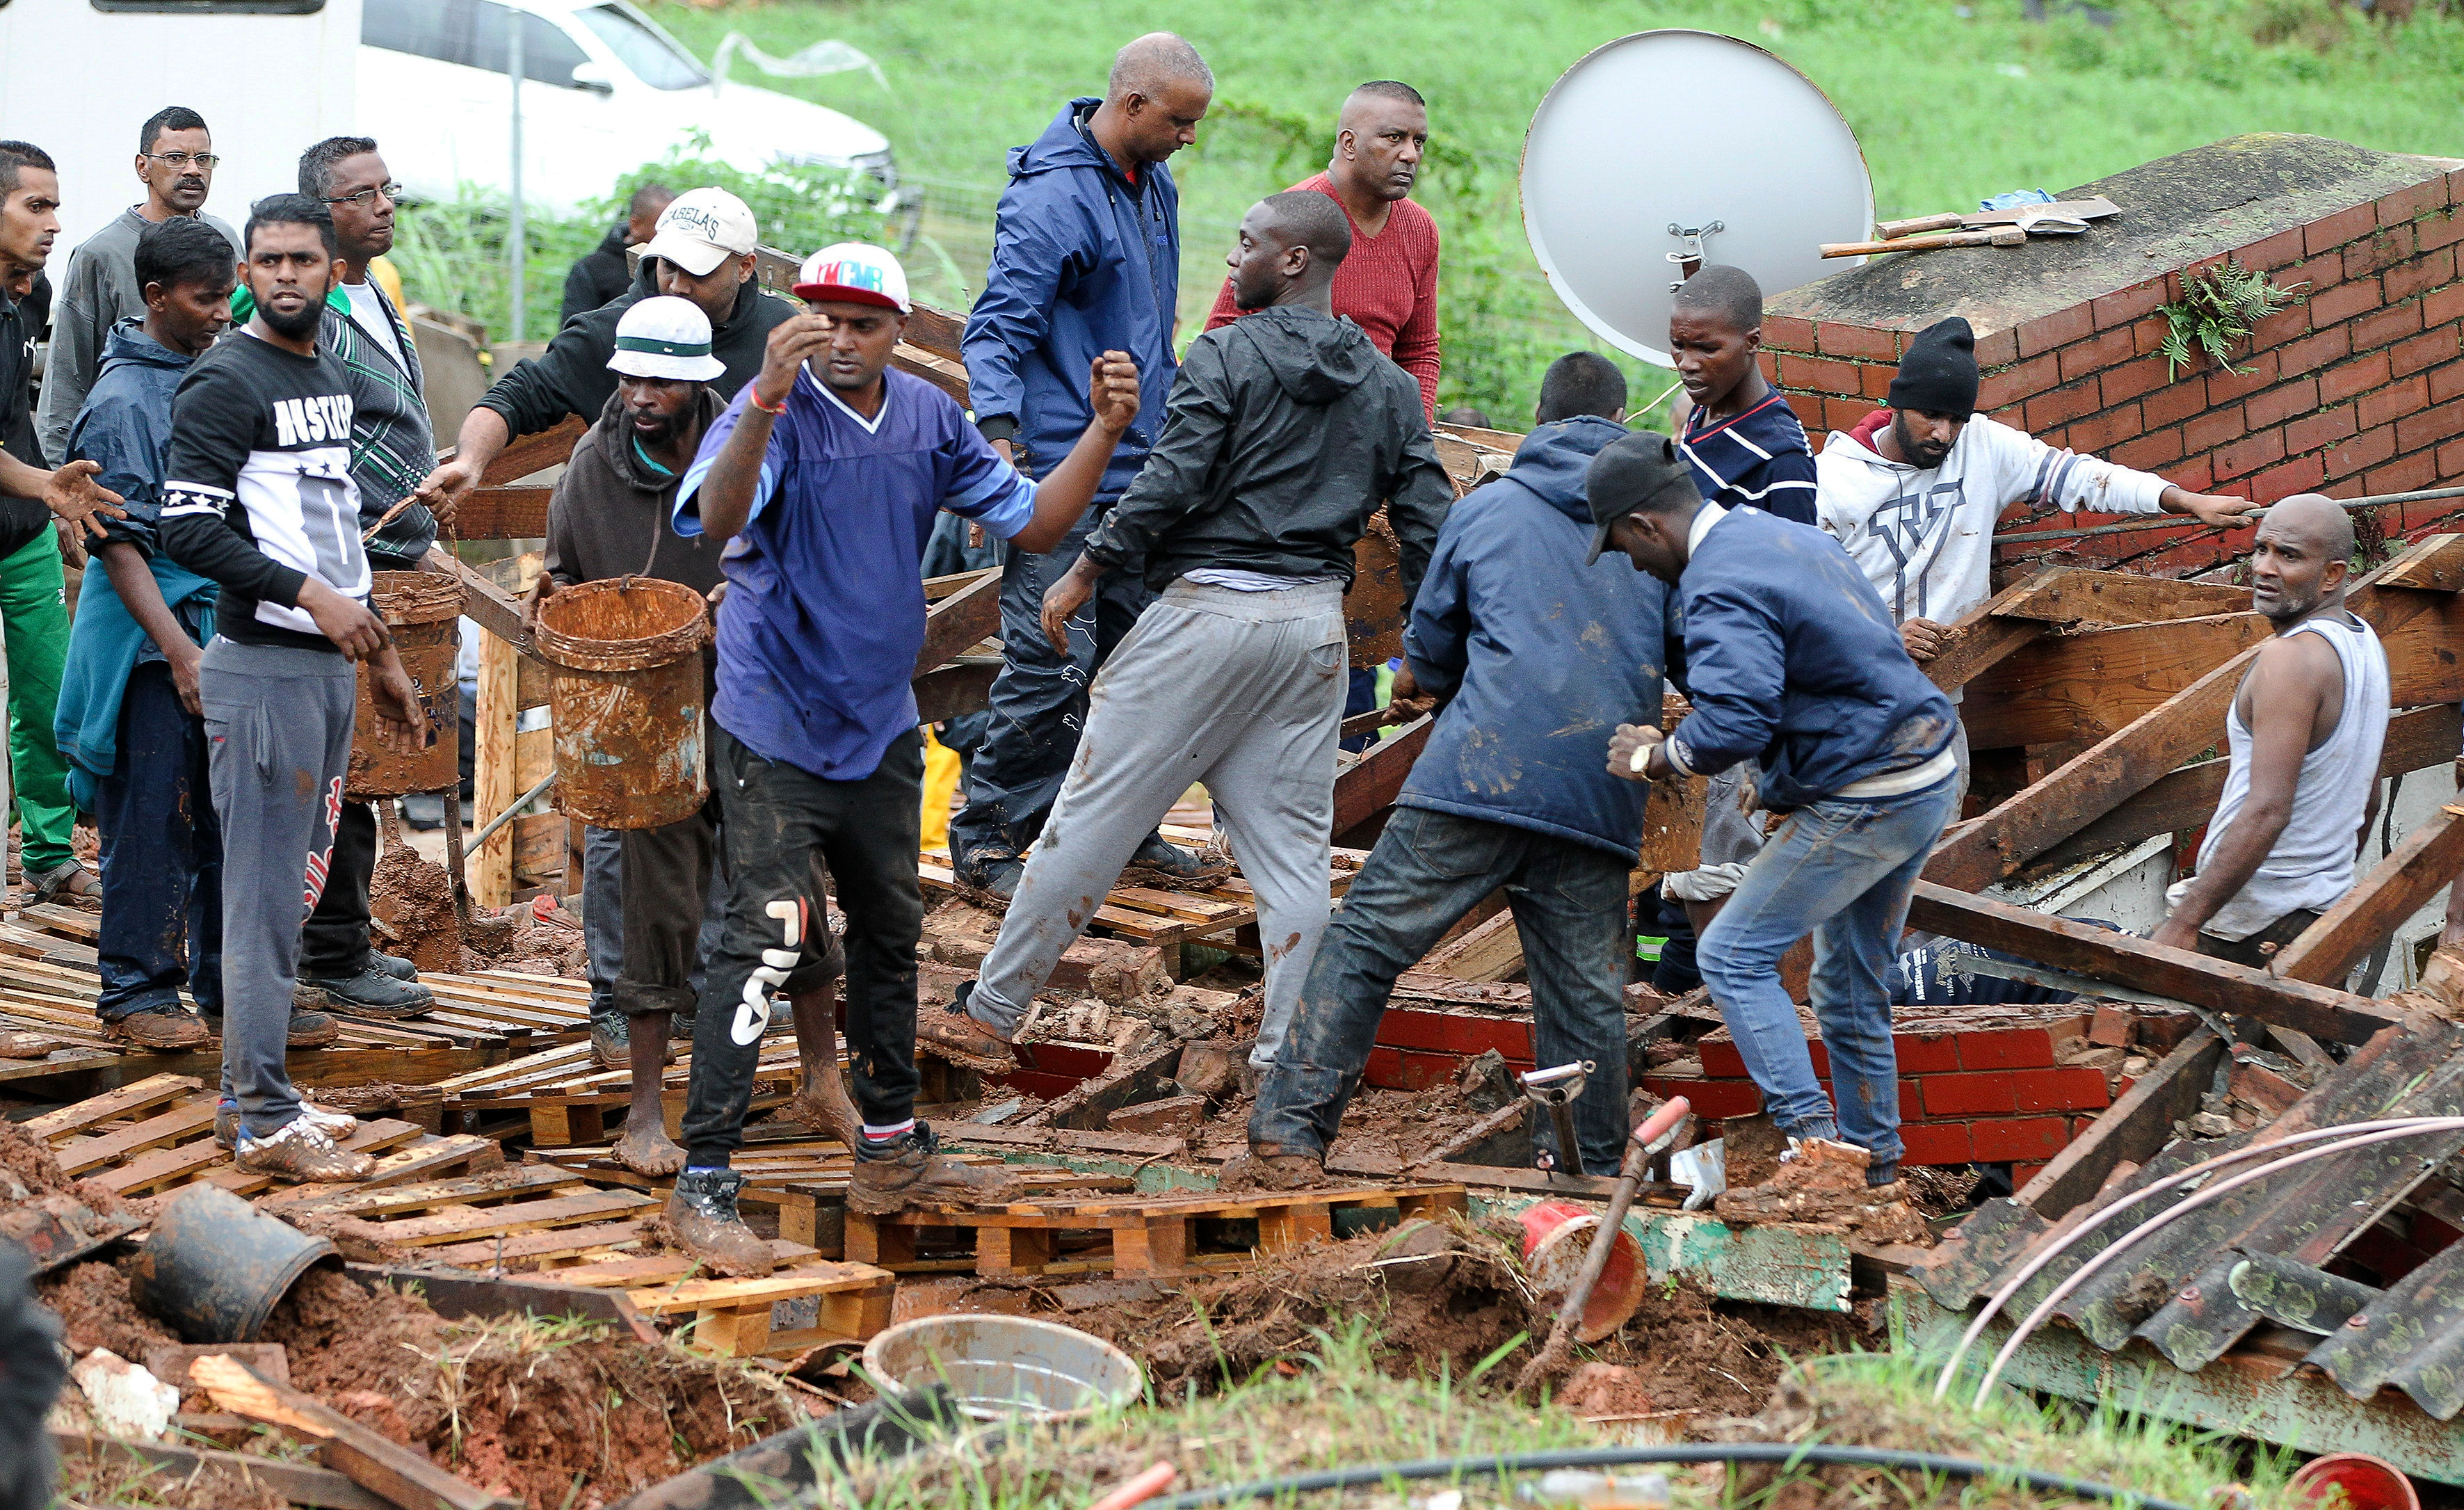 Rescue workers search for bodies in a collapsed building near Durban in South Africa.